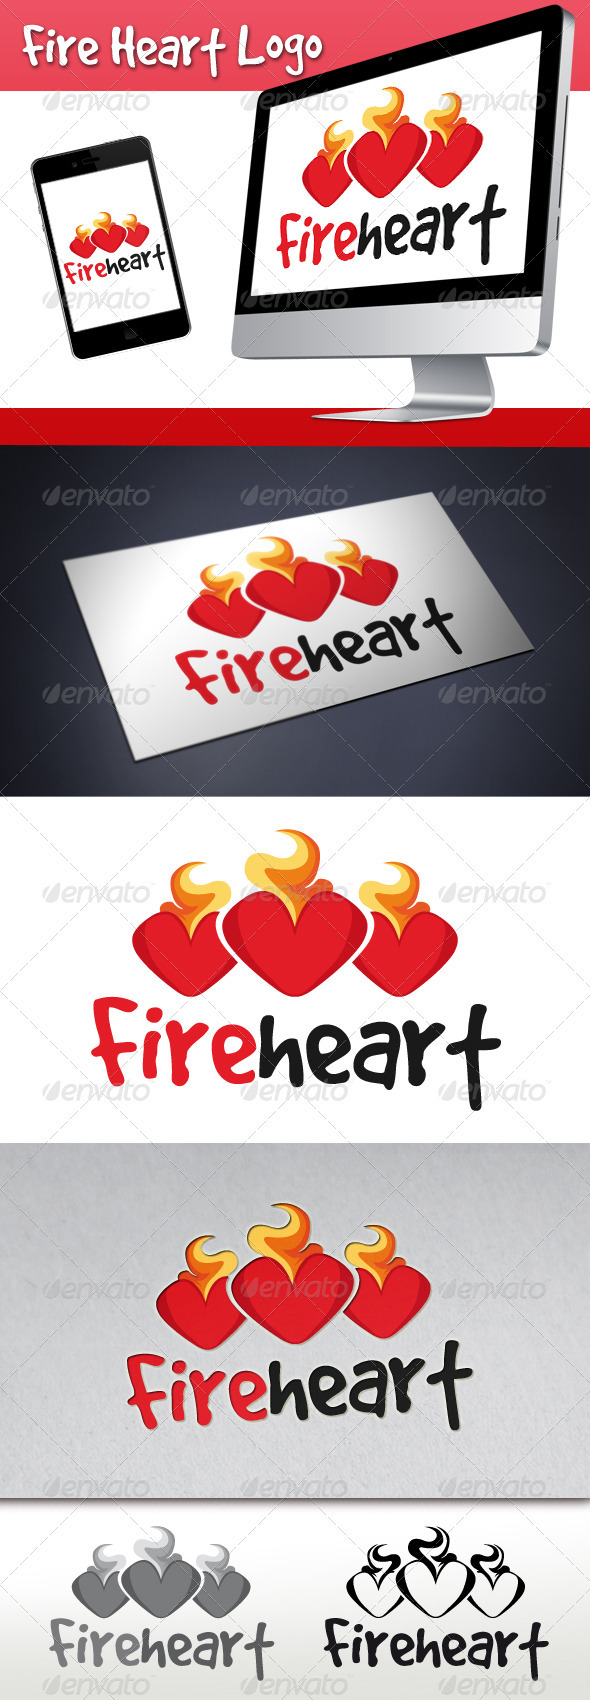 Fire Heart Logo - Objects Logo Templates